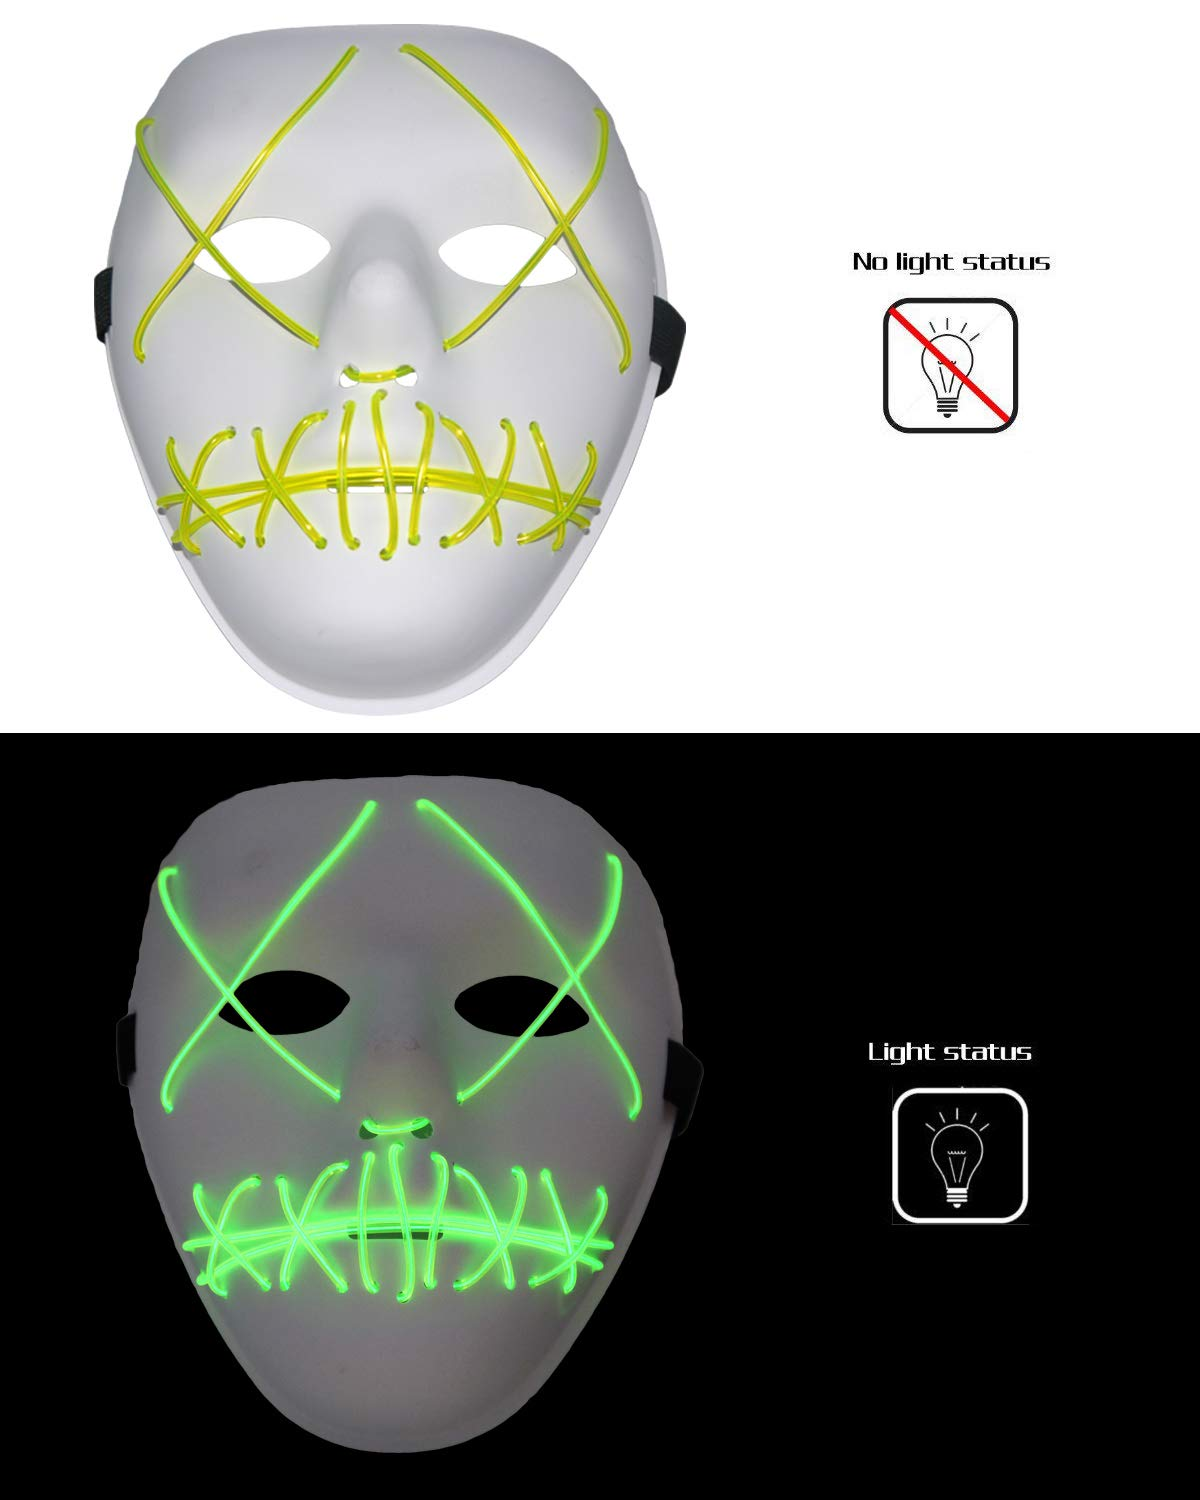 Scary Halloween Mask Cosplay LED Glow Scary EL Wire Light up Grin Masks for Festival Parties Costume (Green)